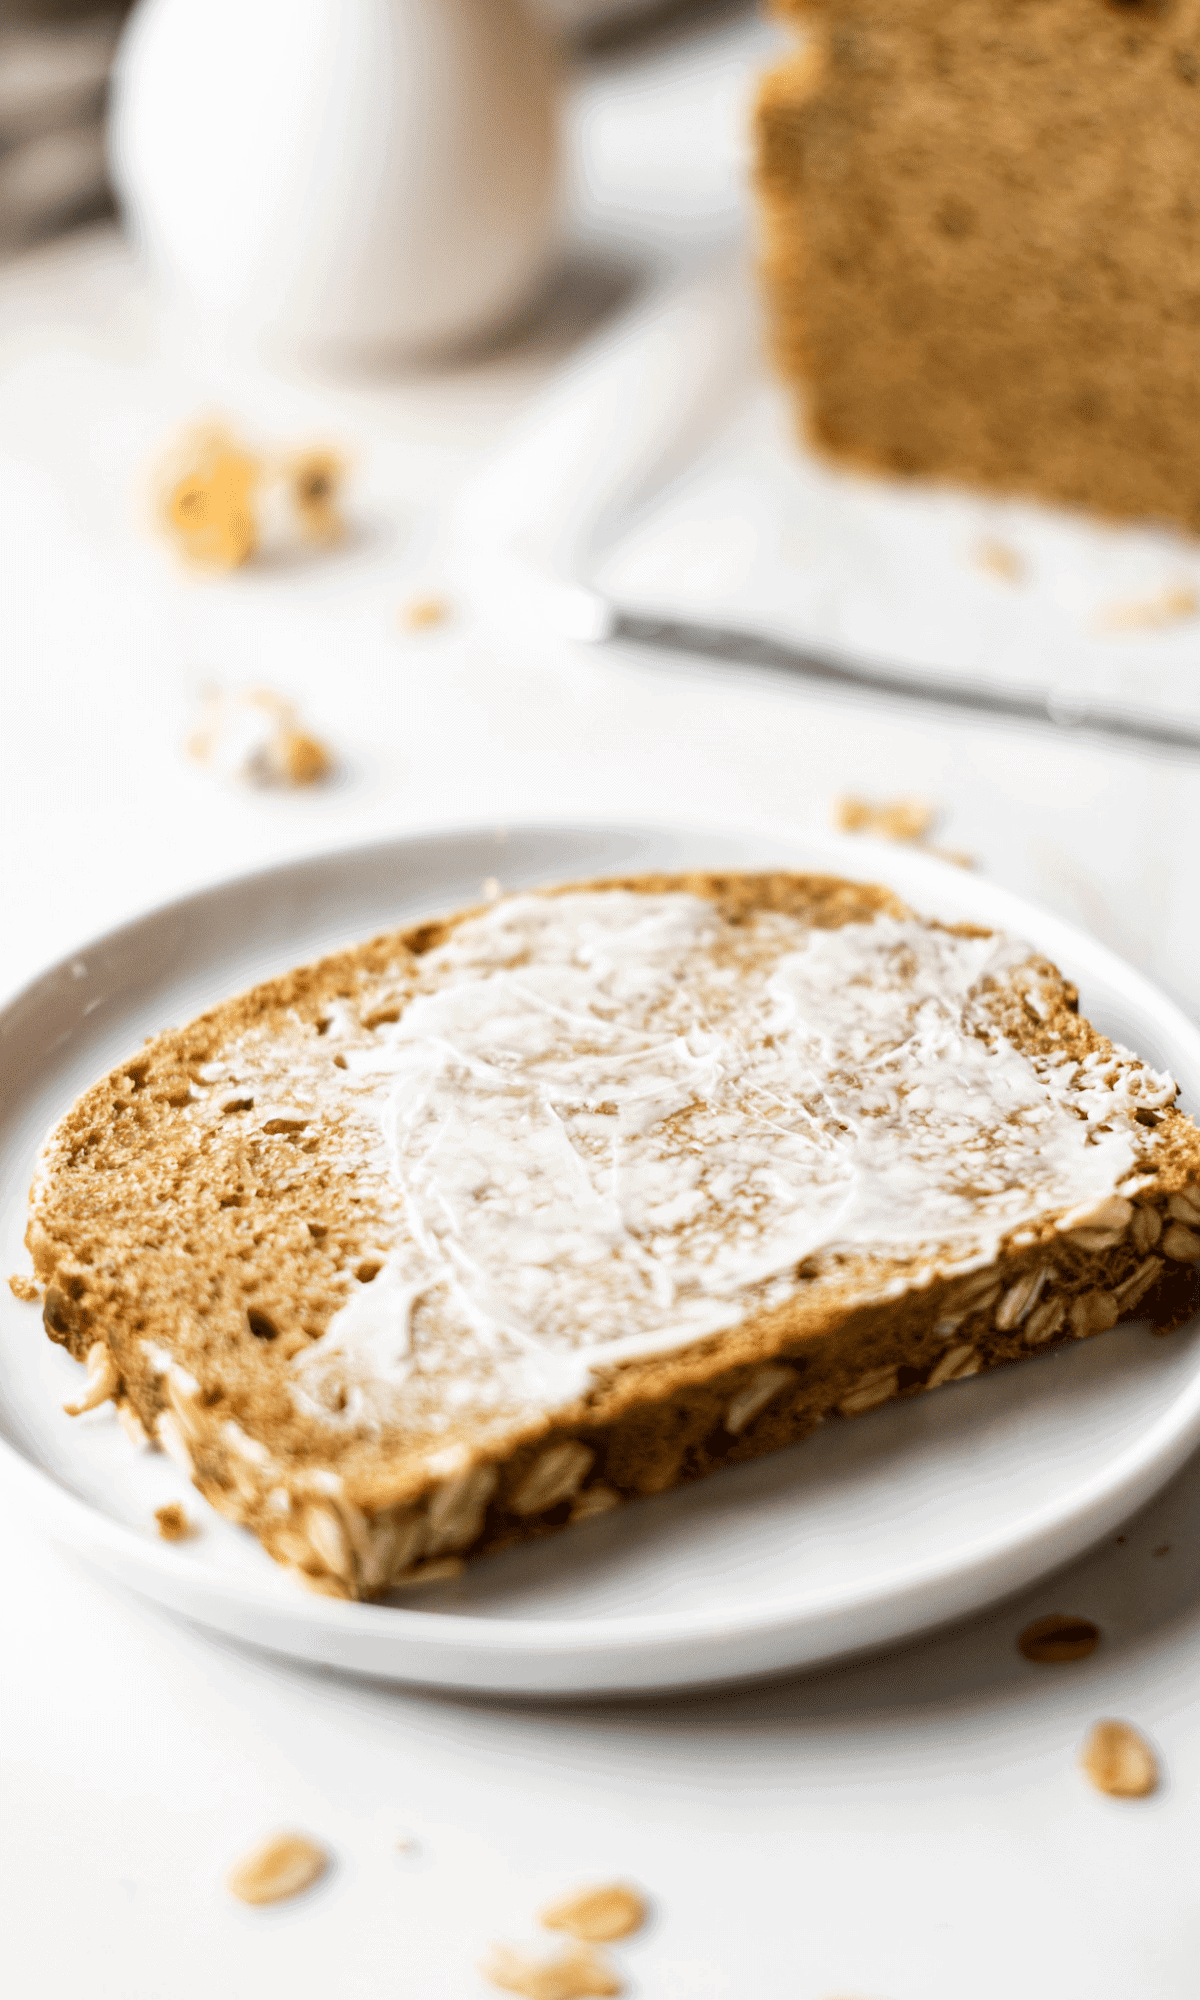 A buttered slice of Oatmeal Bread on a small white plate.